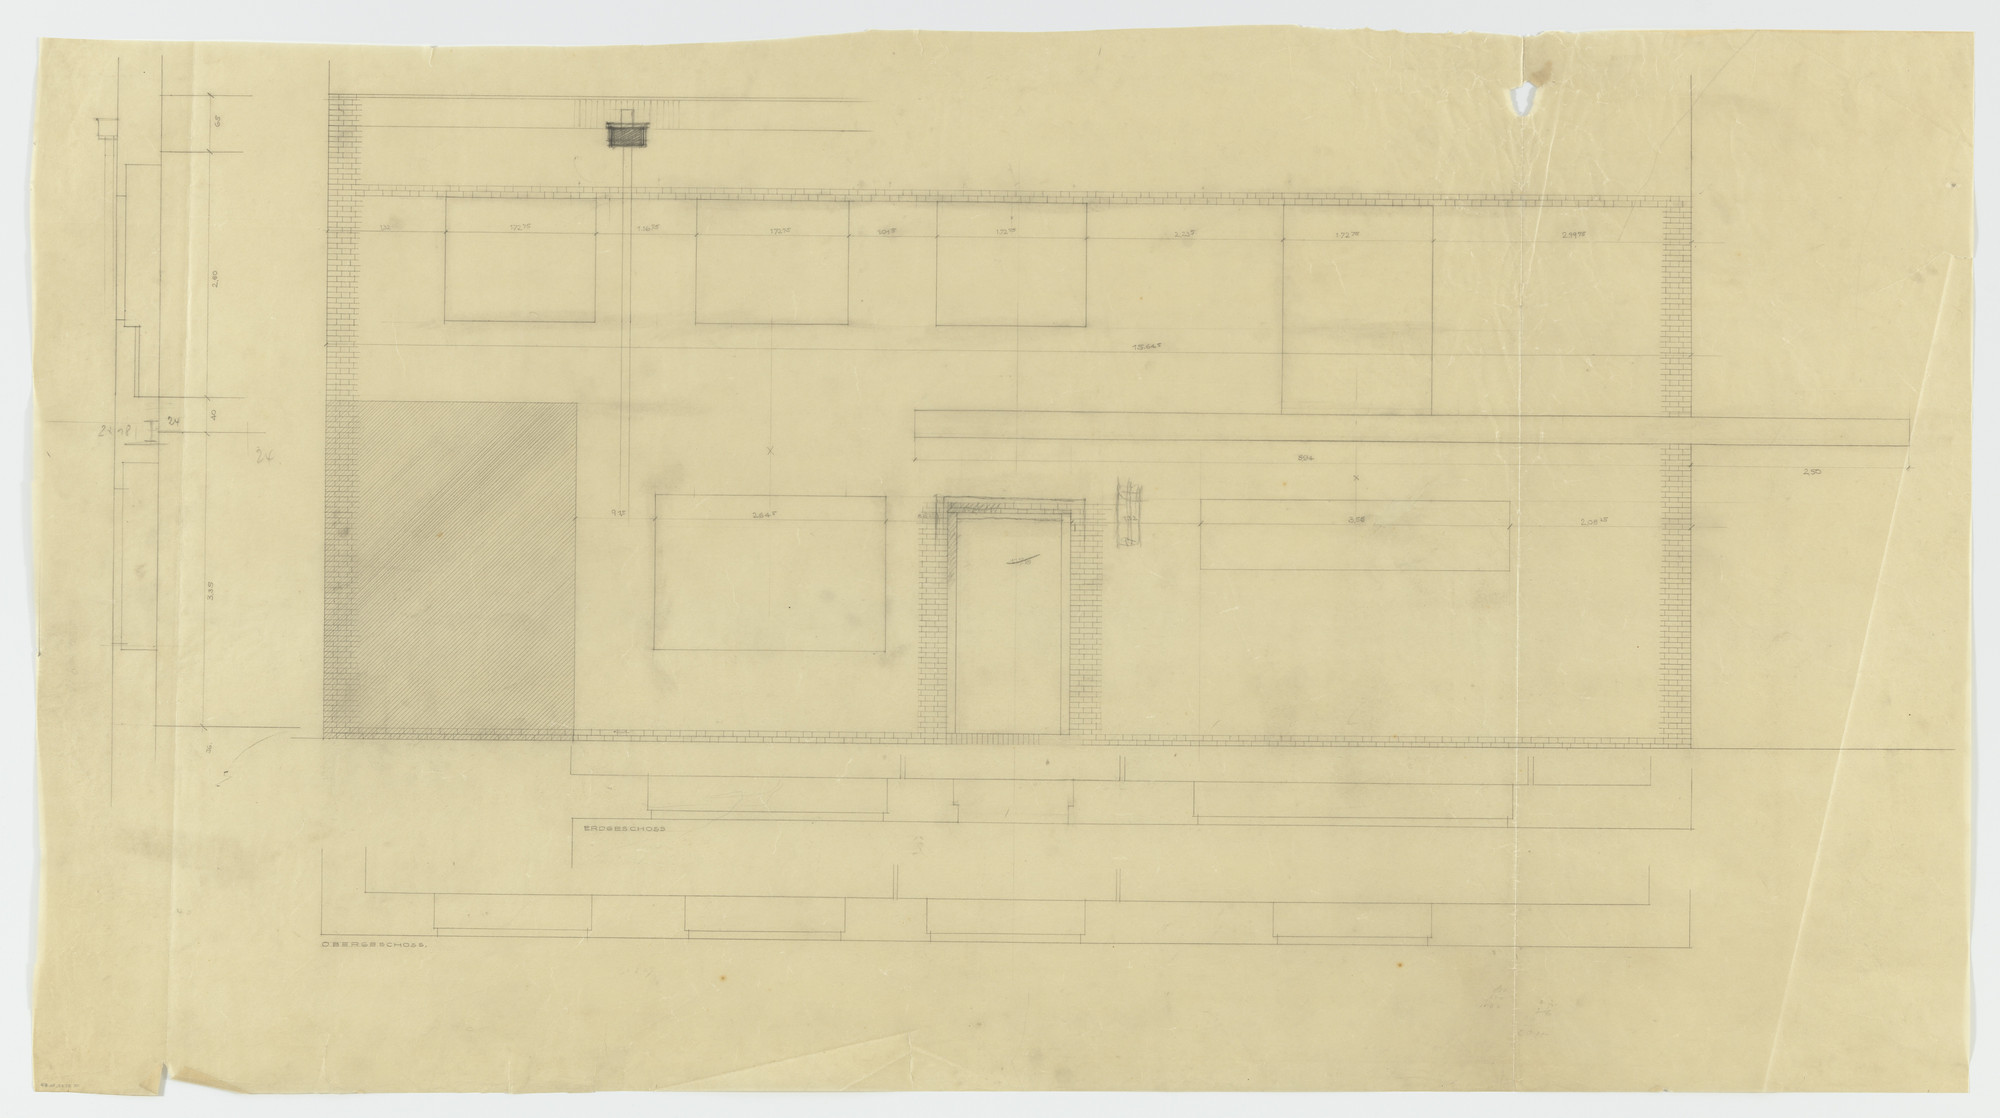 Ludwig Mies van der Rohe. Wolf House, Gubin, Poland (Elevation and plans: ground and second floors). 1925-1927